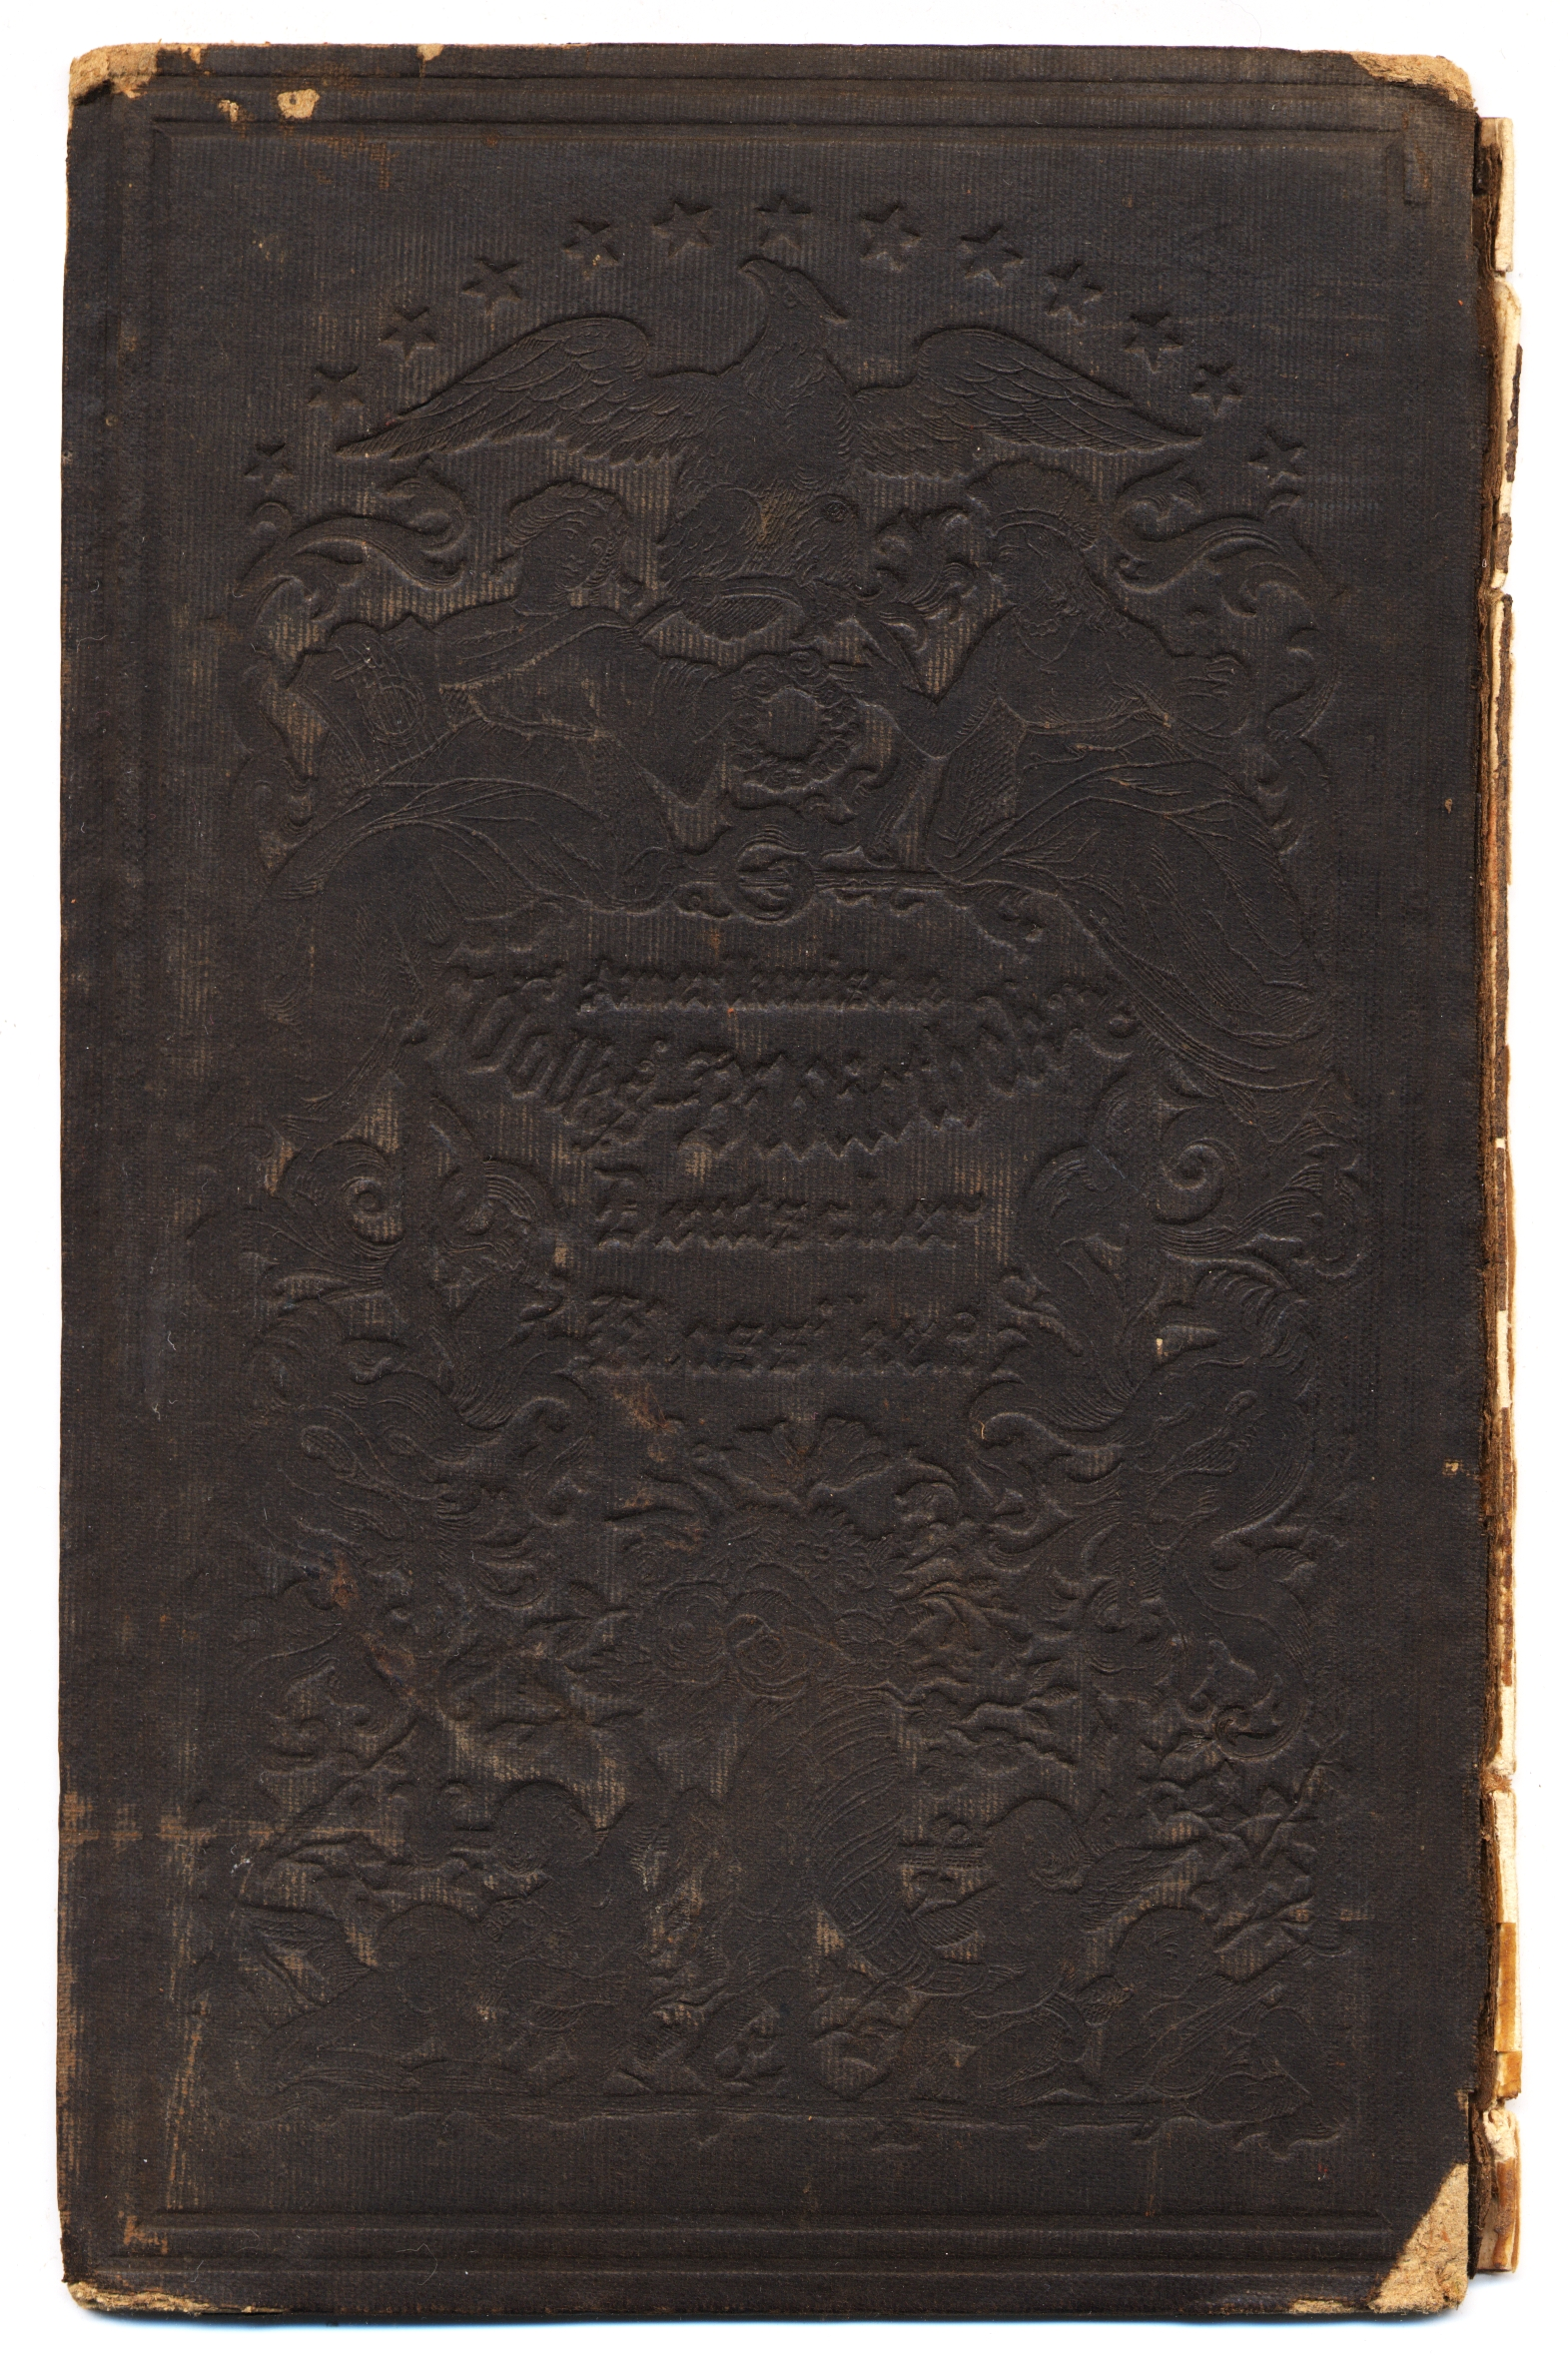 Free Black Bumpy Old Book Cover Texture